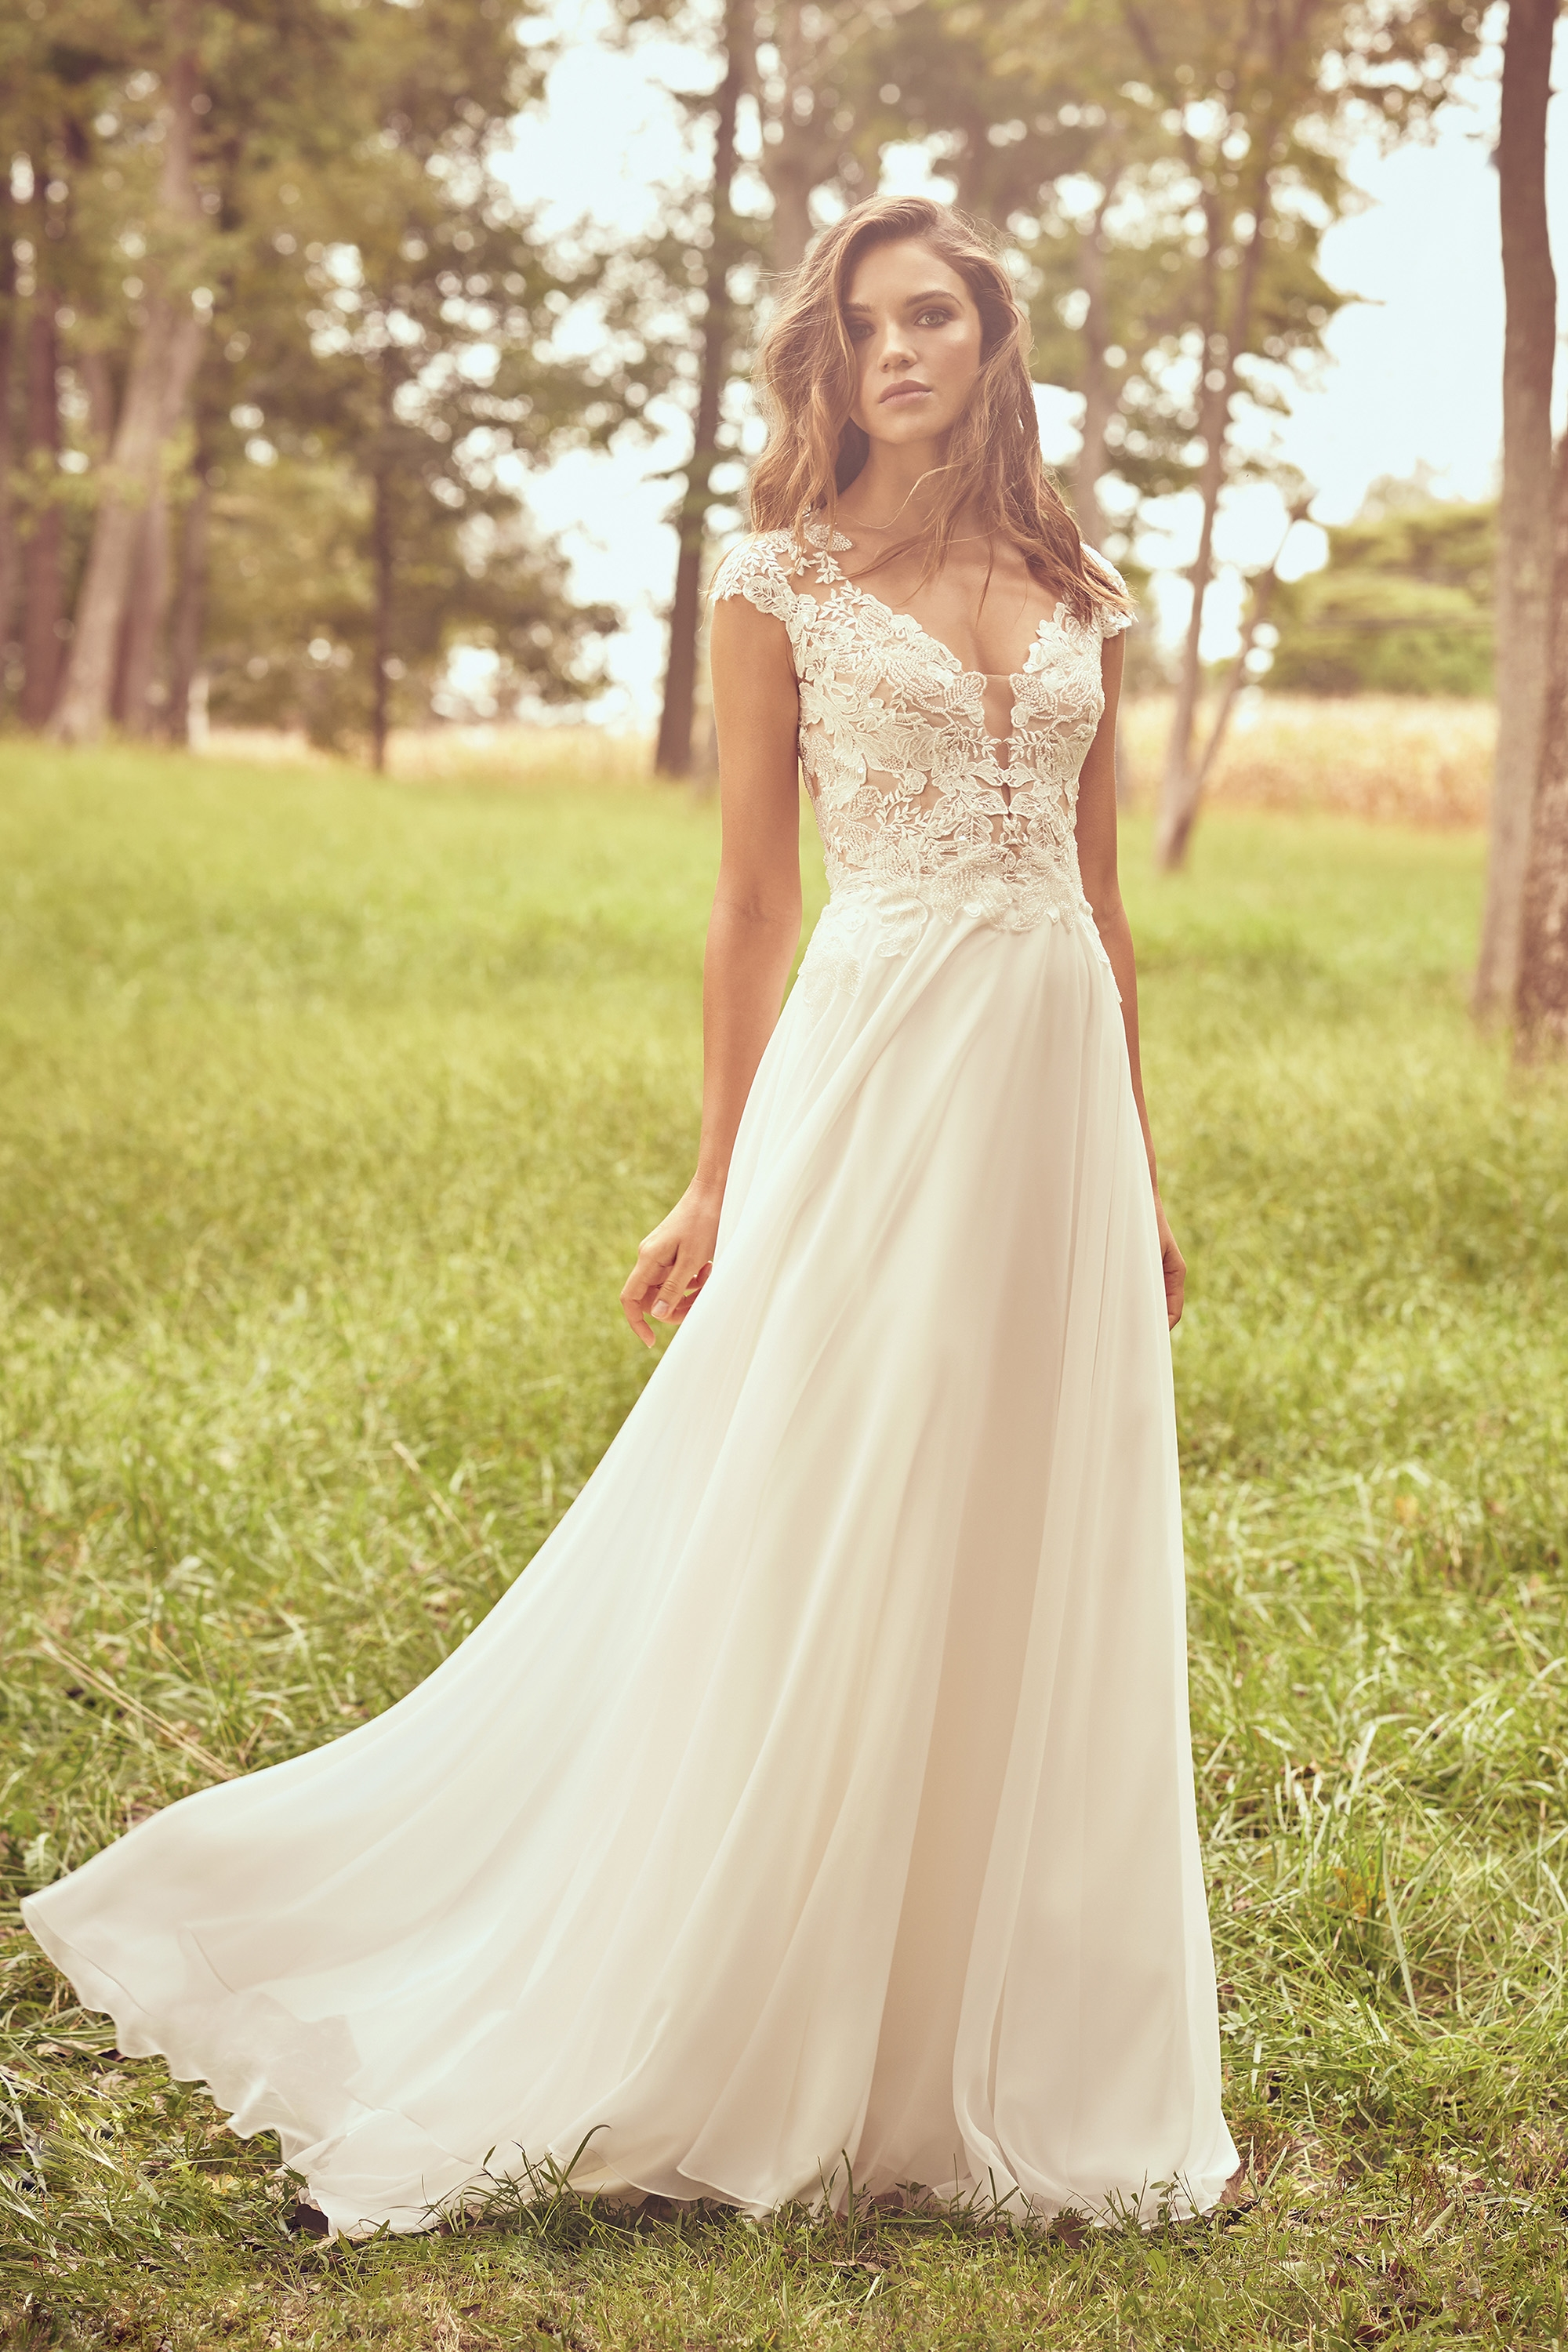 66077 - Chiffon A-line dress with Venice beaded lace bodice featuring Queen Anne neckline